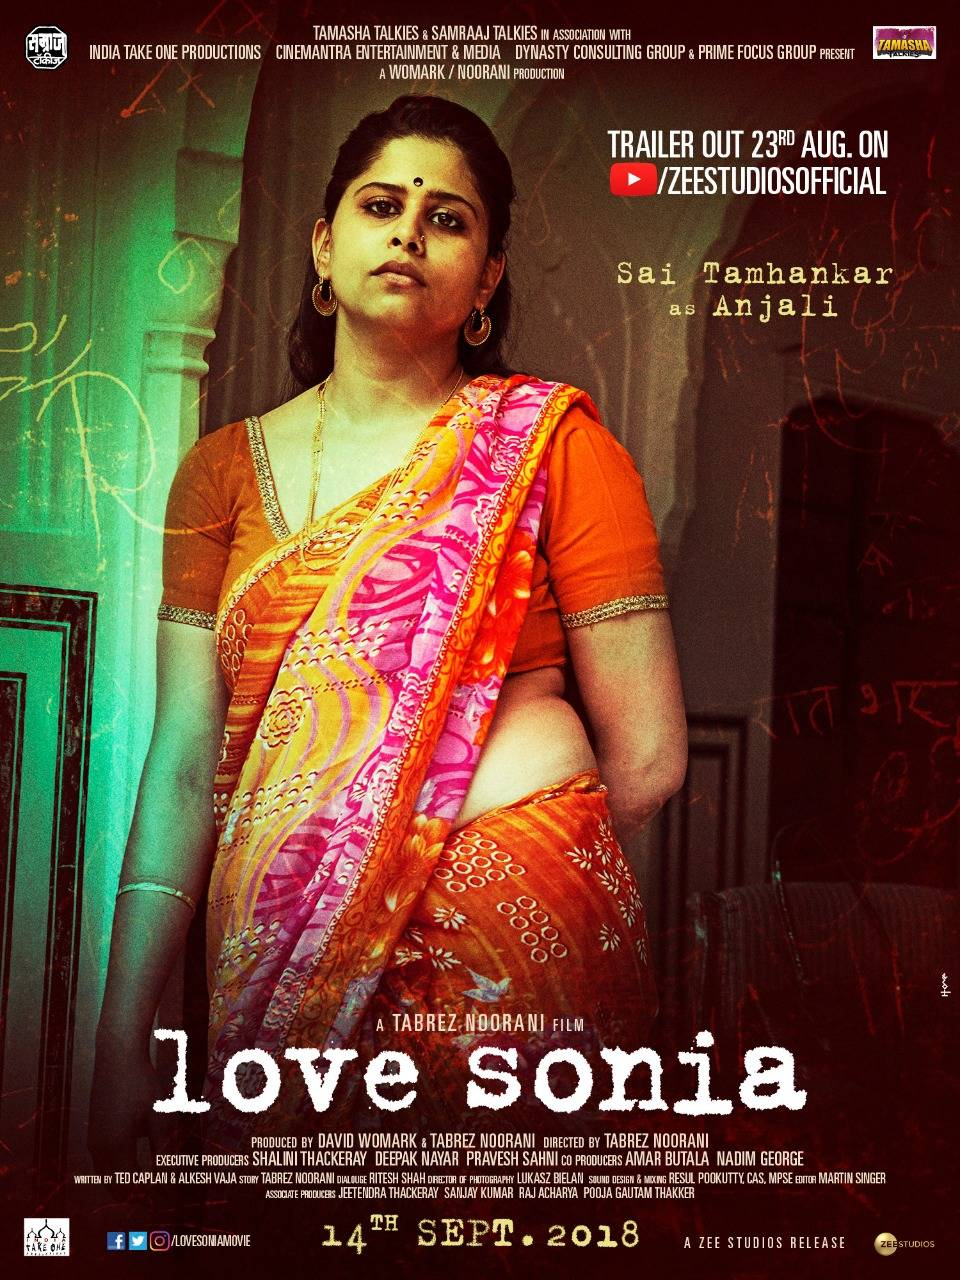 Love Sonia Sai Tamhankar Portrays A Friend One Wouldnt